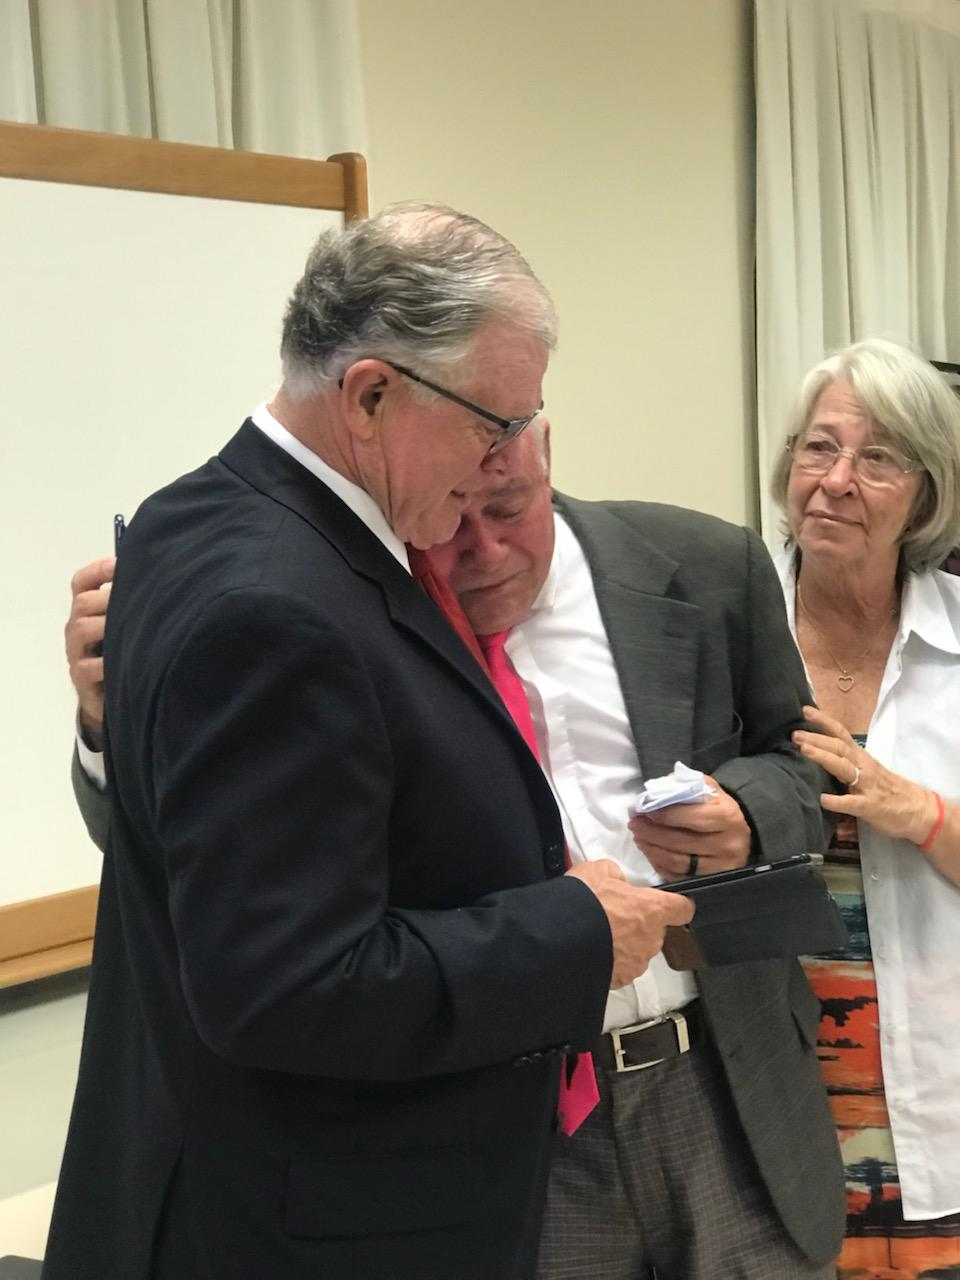 Sharing a tearful reunion are John Beck, left, and Antonio Ferreira, center, on June 1, 2019, in Fortaleza, Brazil. As a missionary in 1966, Beck helped teach and convert the Ferreira family, who were the city's first Church members.